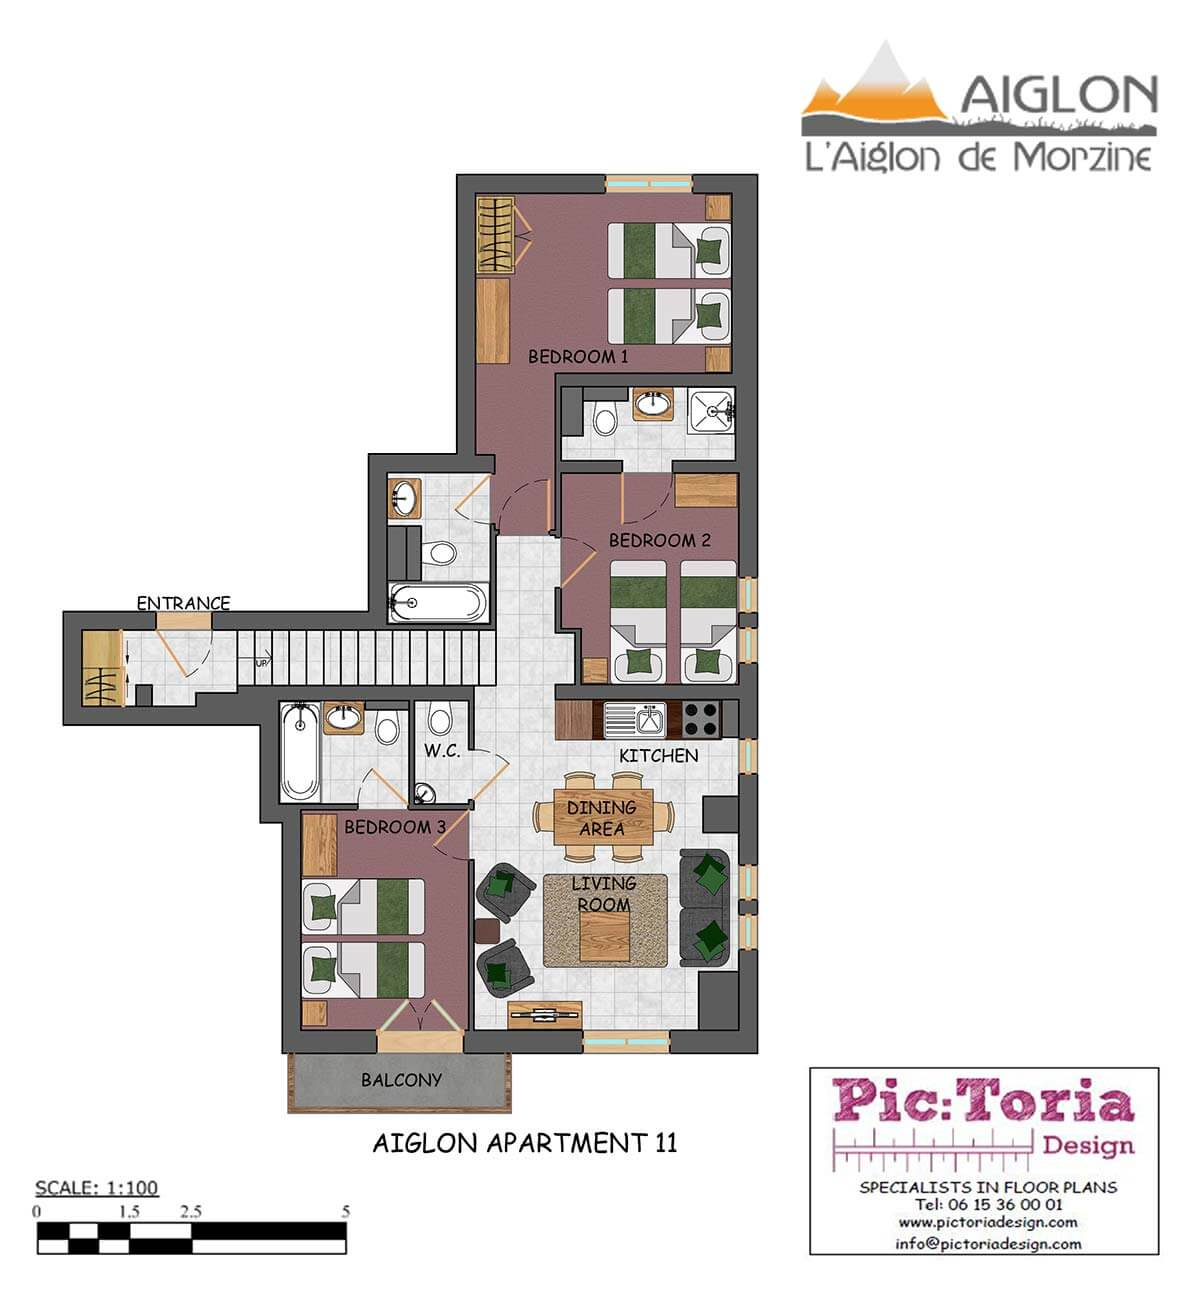 Image of a 3 Bedroom Morzine Apartment 11, floor plan #11